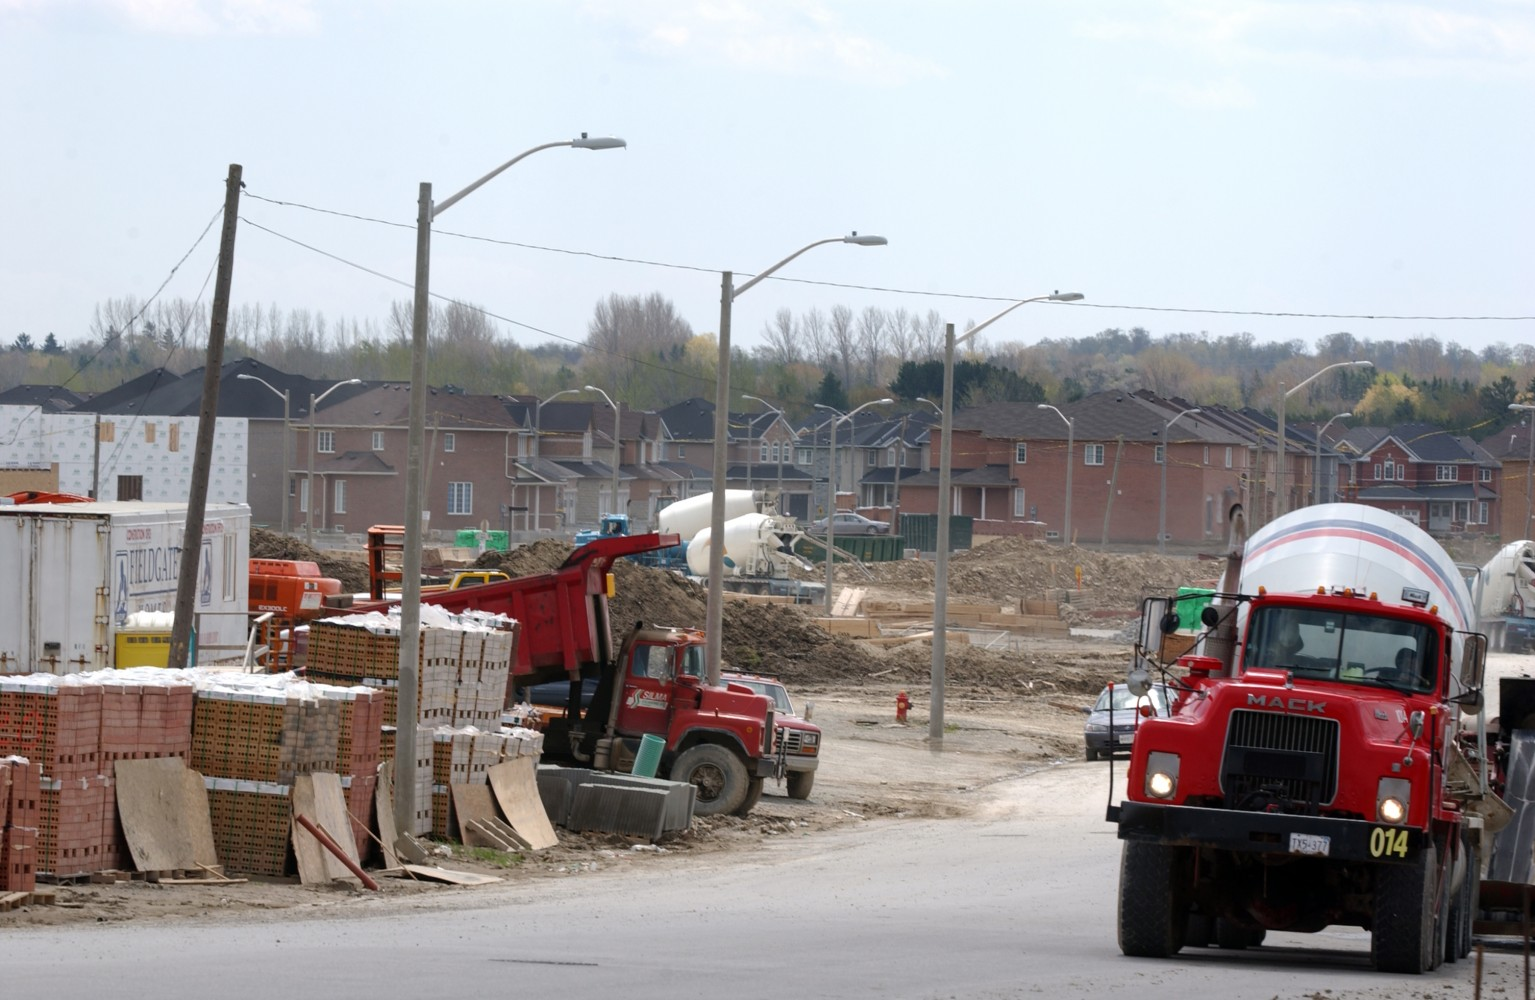 Housing development roaring along in Brampton, Bill 108 notwithstanding